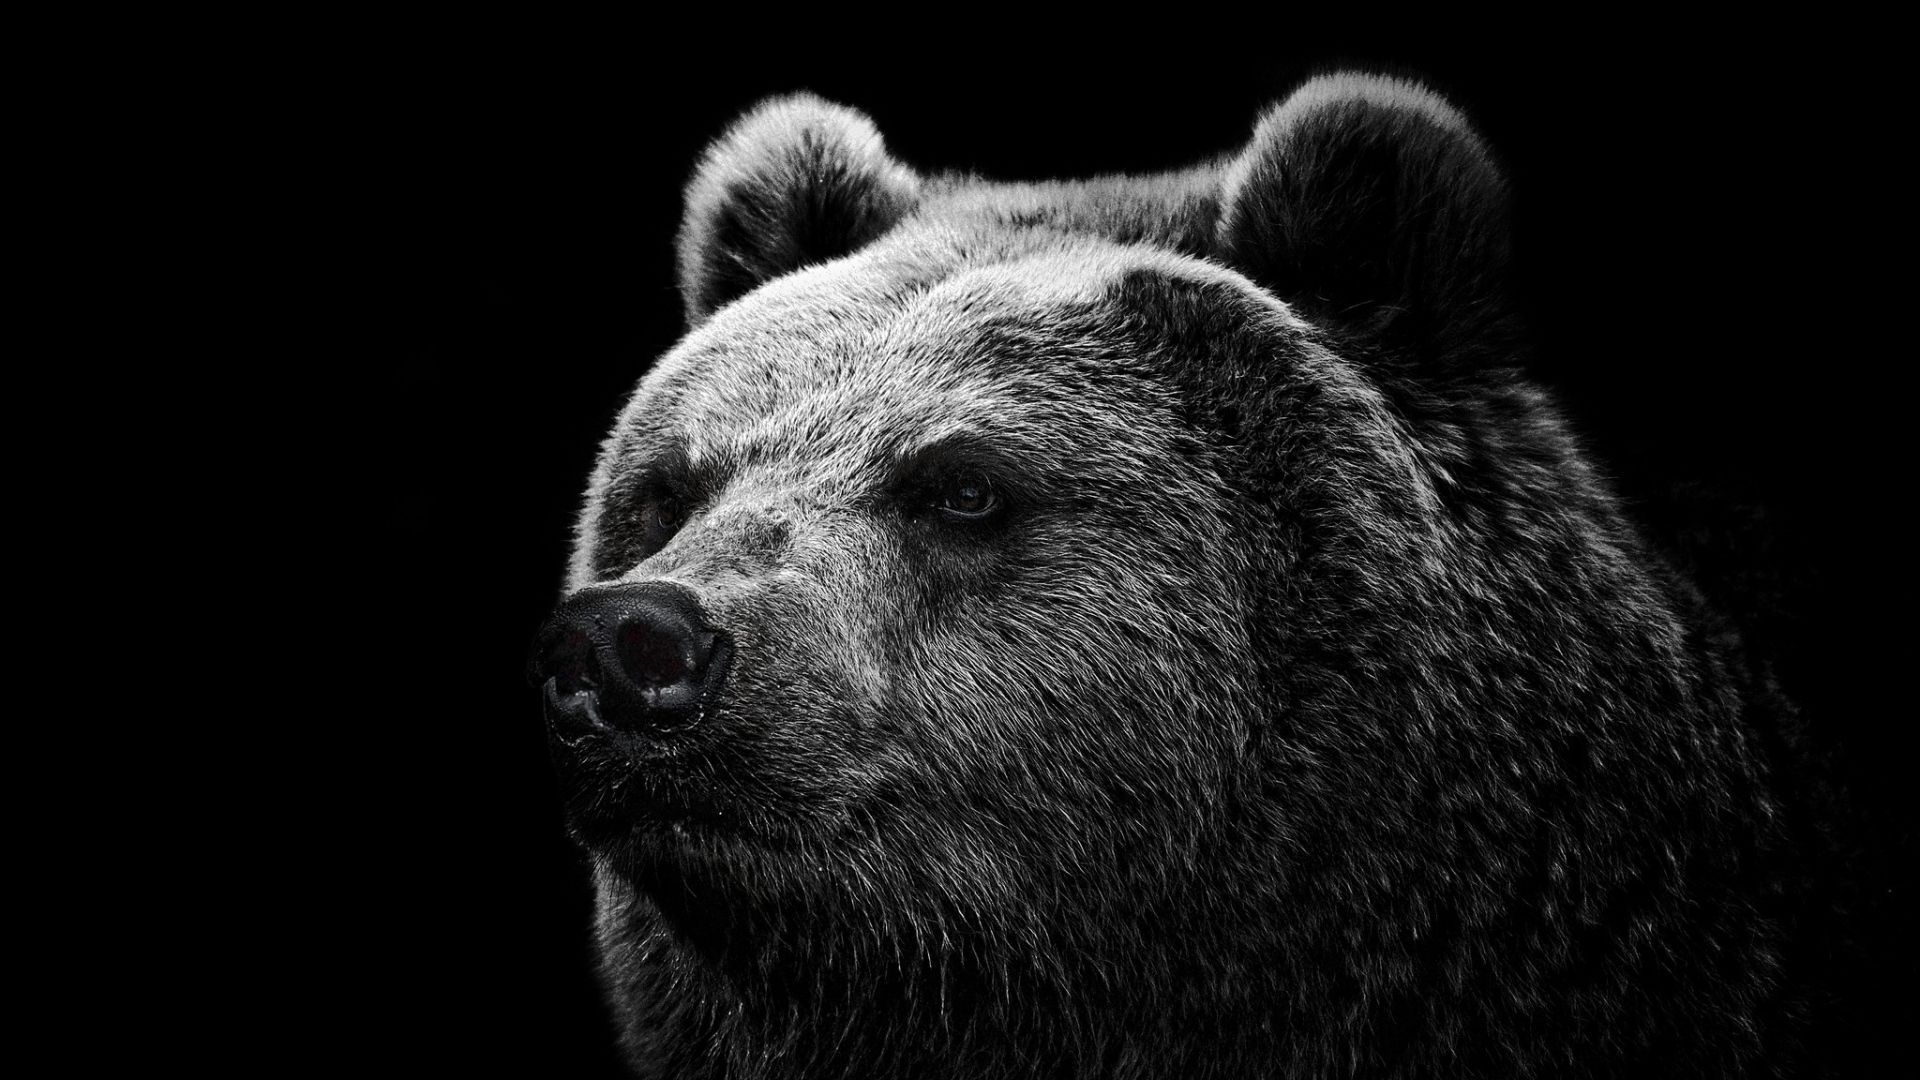 Black Bear Widescreen